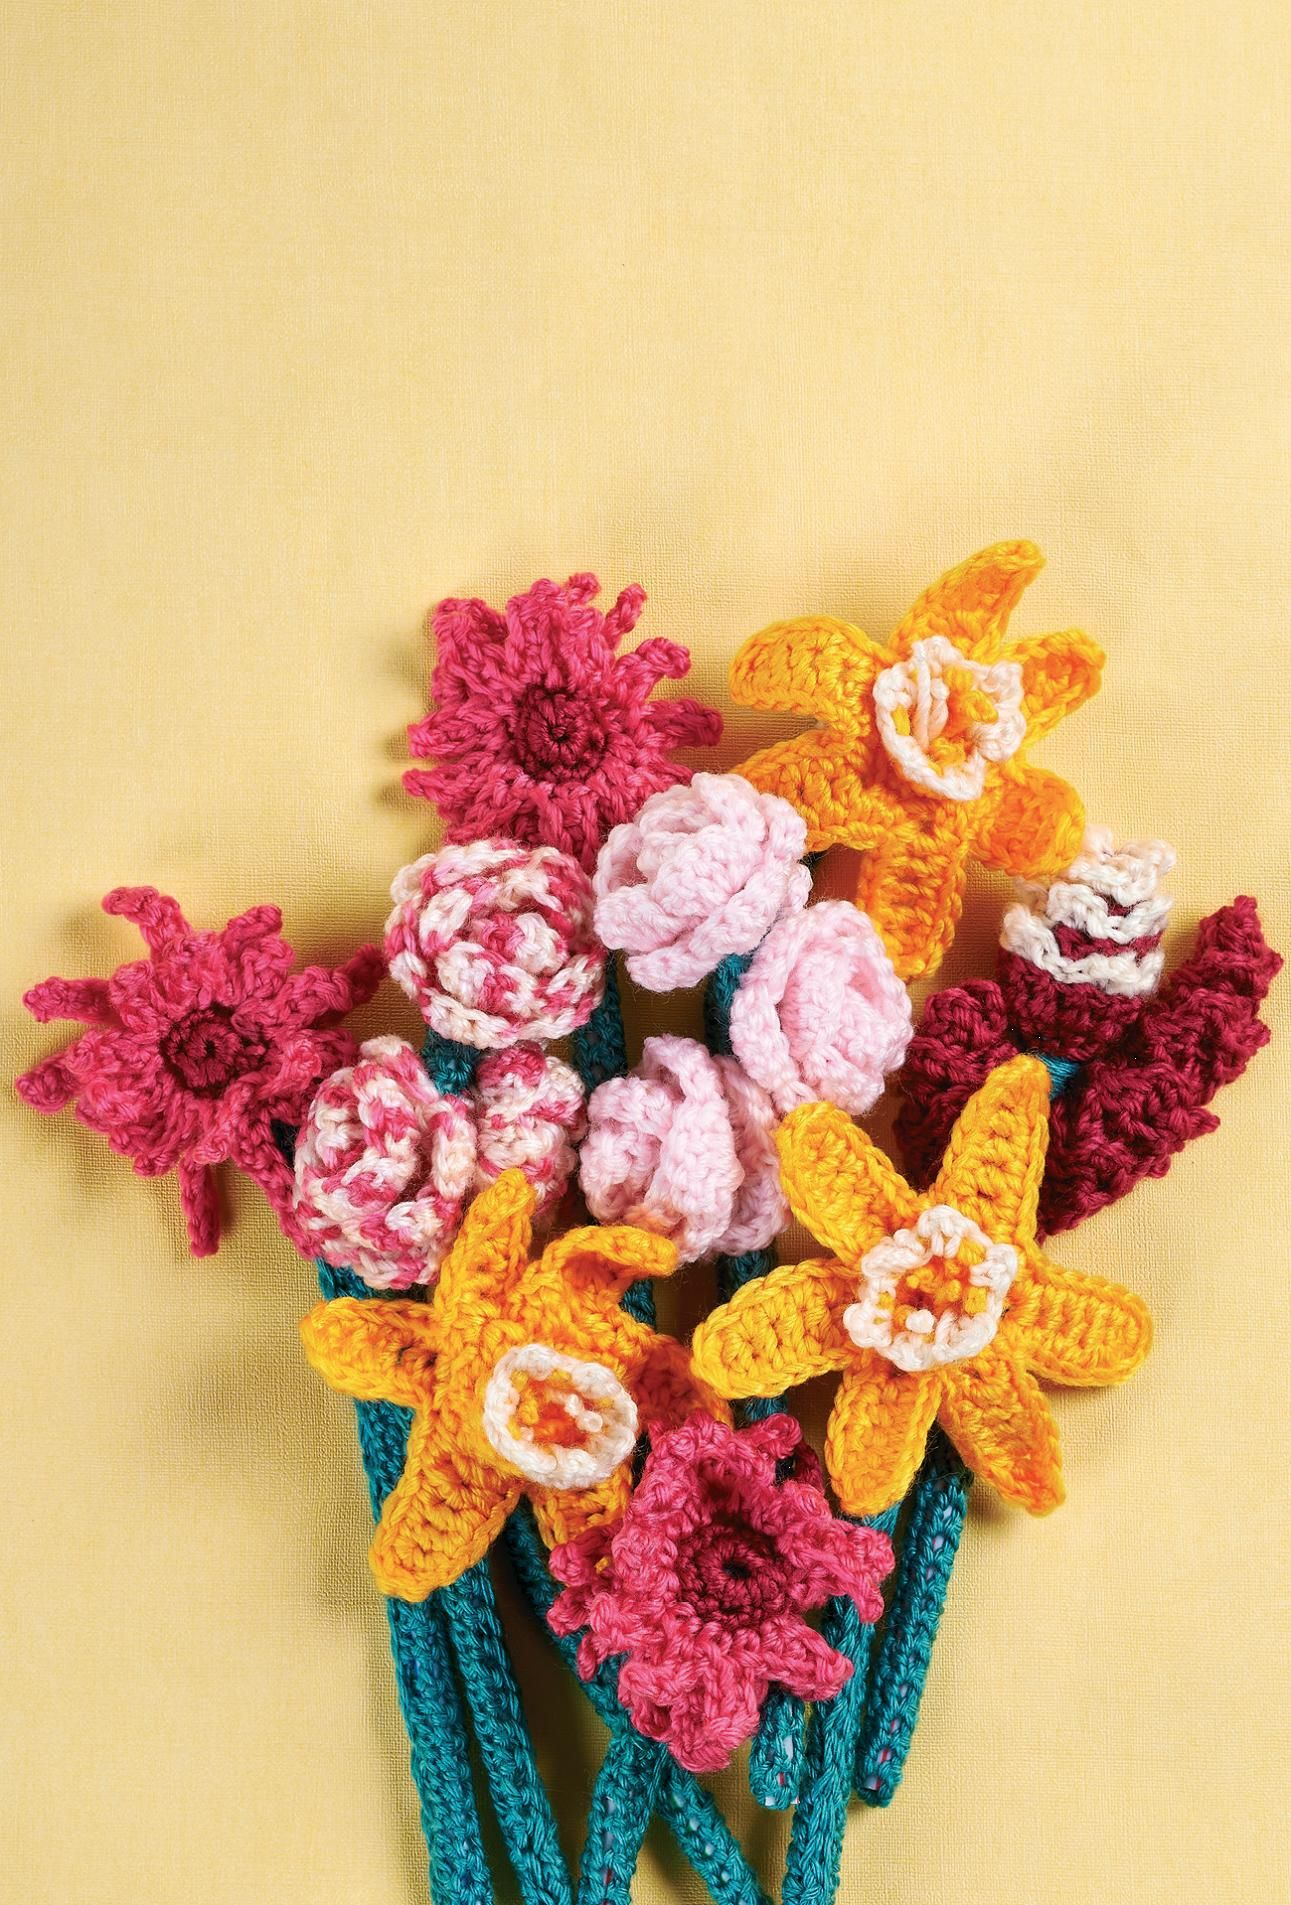 Crochet flower bouquet crochet pattern flowers patterns crochet flower bouquet crochet pattern izmirmasajfo